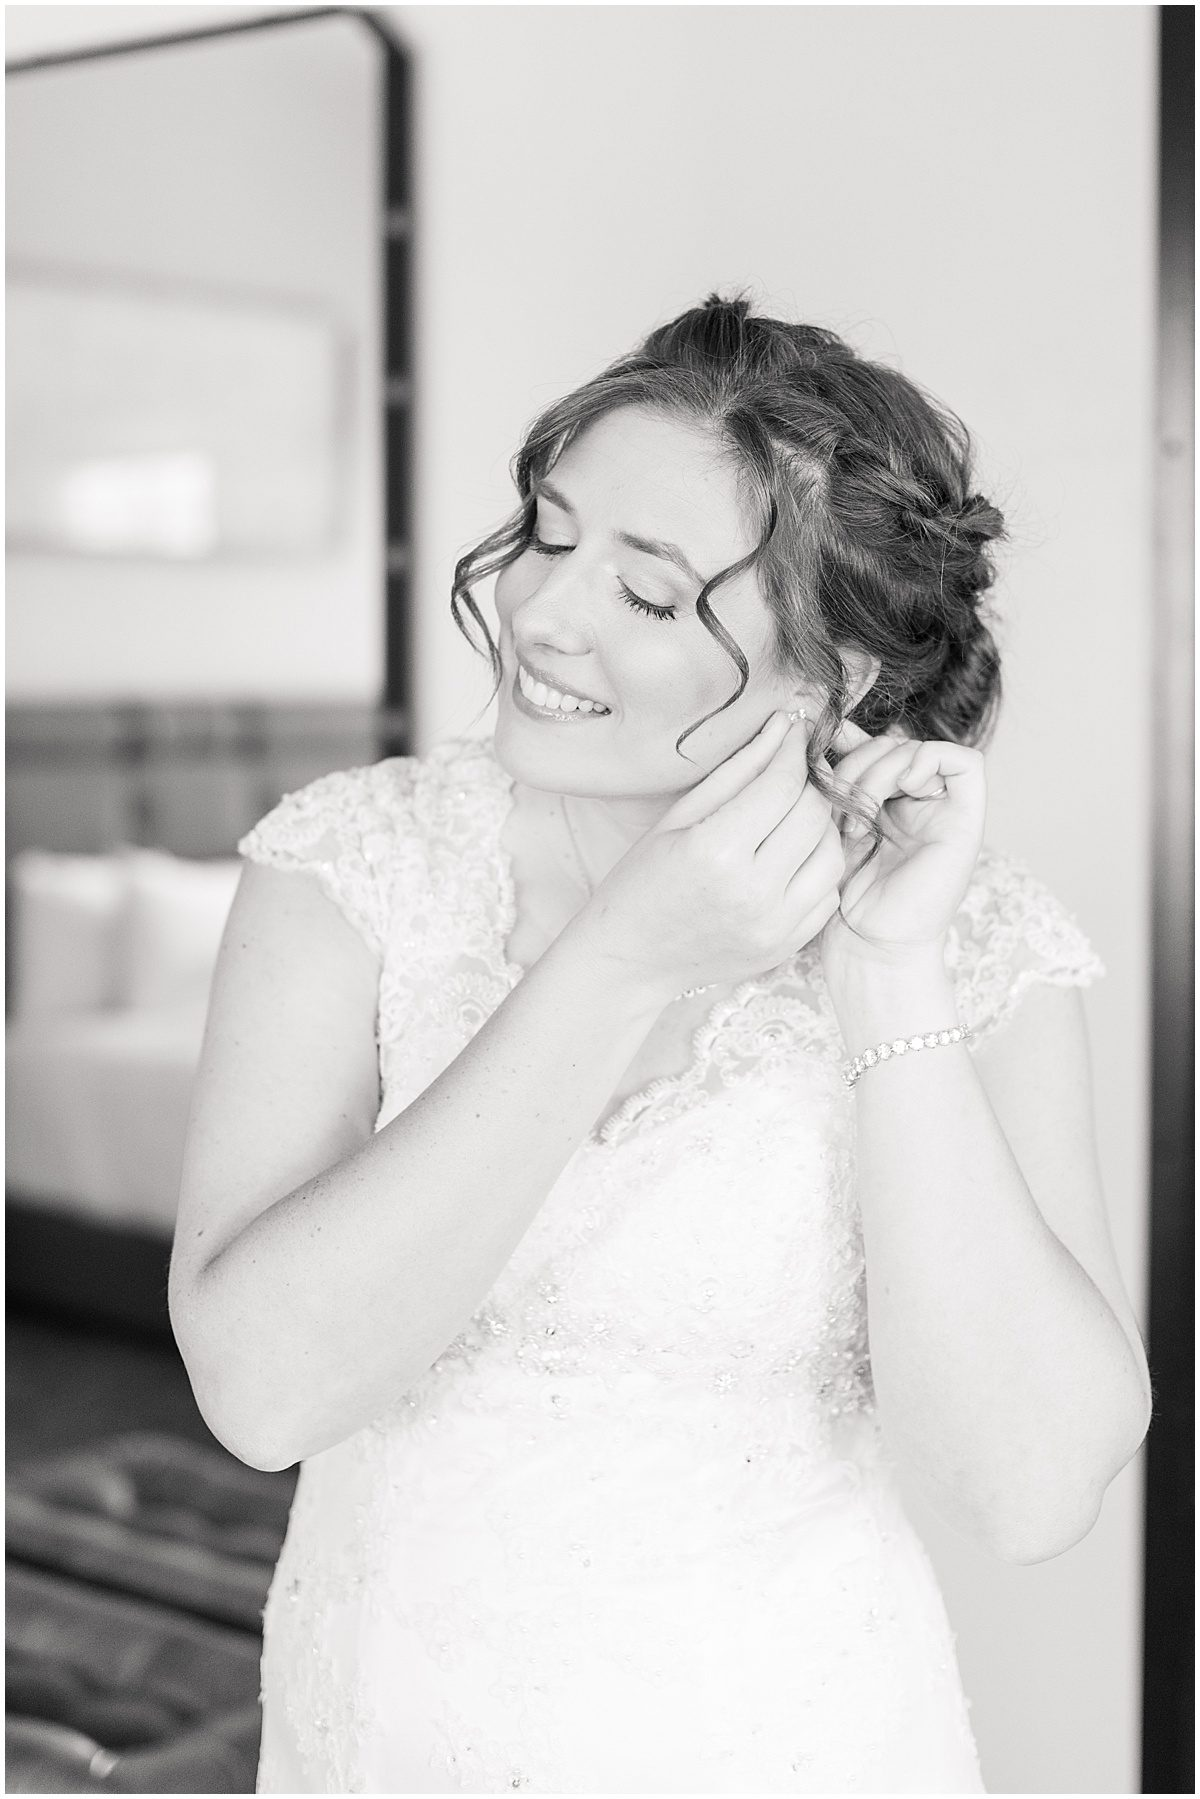 Bride getting ready for wedding at Ironworks Hotel in Indianapolis